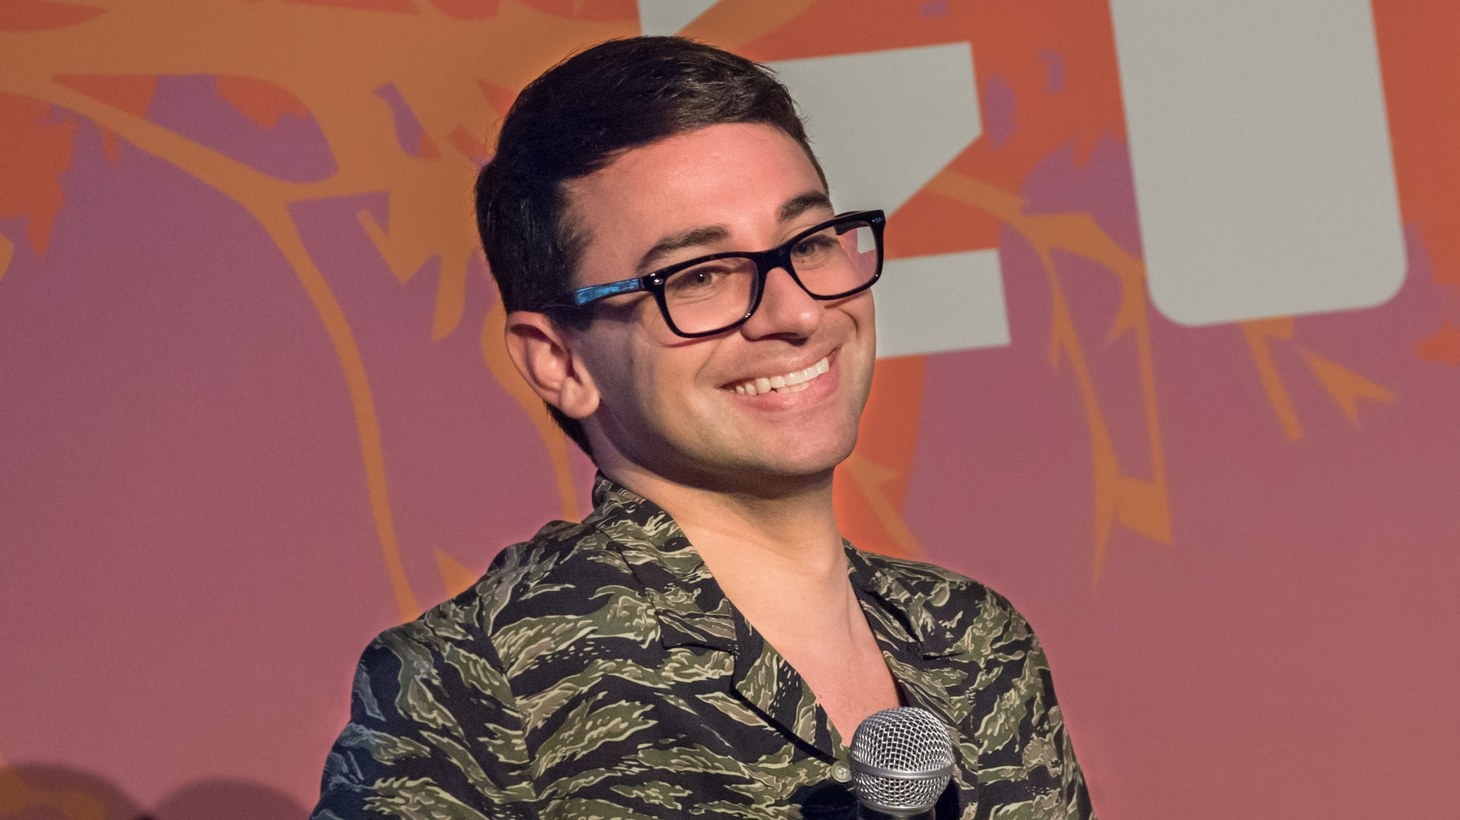 Christian Siriano, winner of Project Runway season 4, at Ozy Fest in 2018.